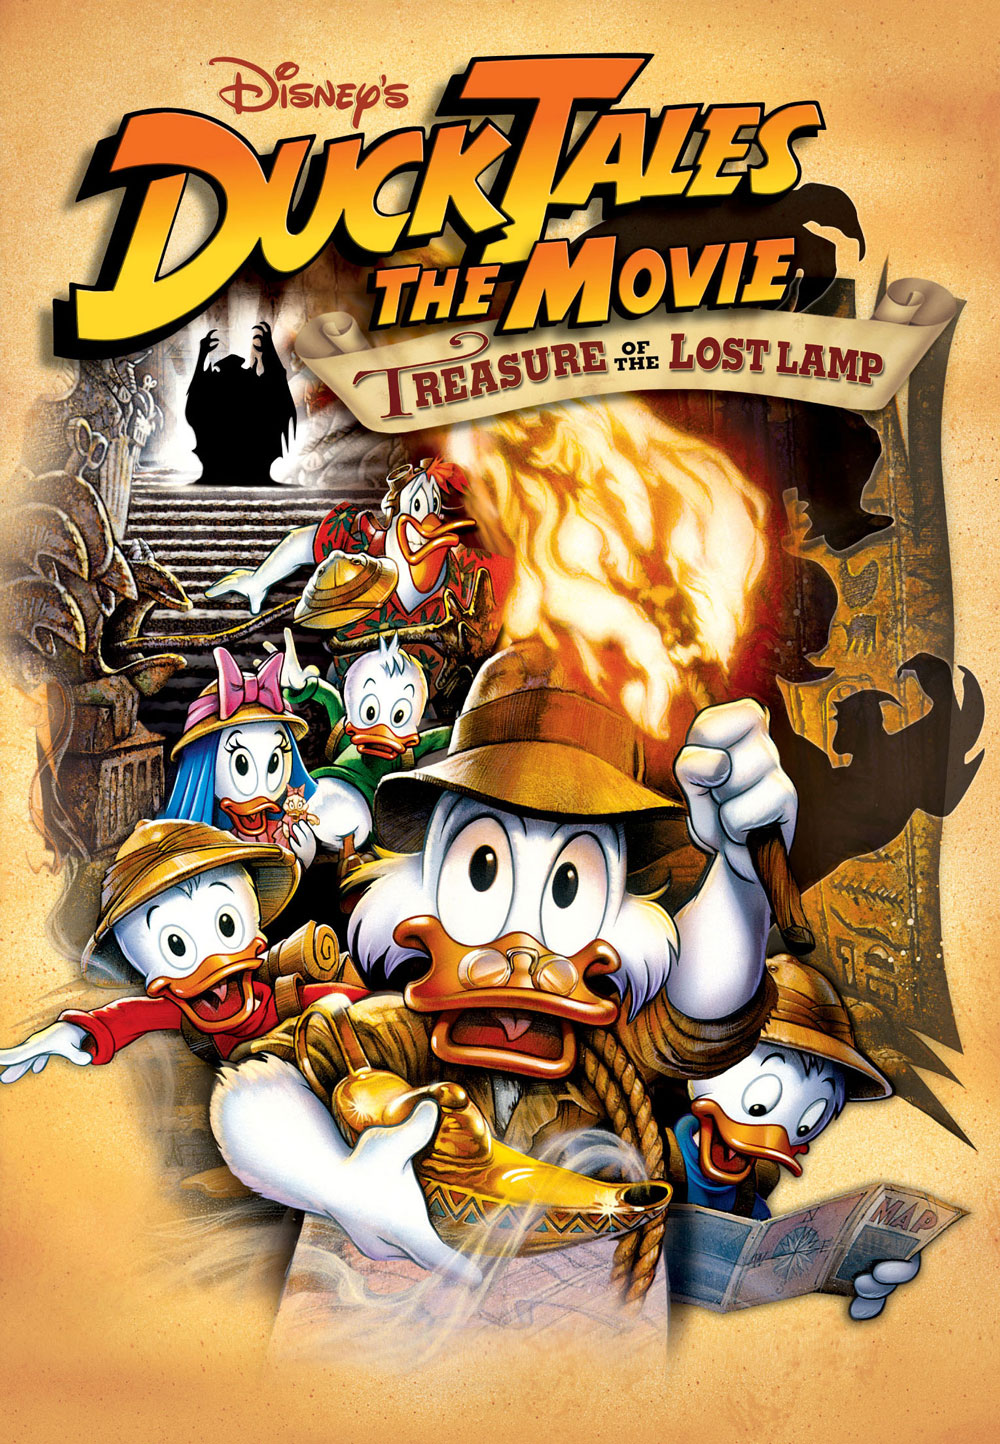 Chip And Dale Wallpaper Hd Ducktales The Movie Treasure Of The Lost Lamp Disney